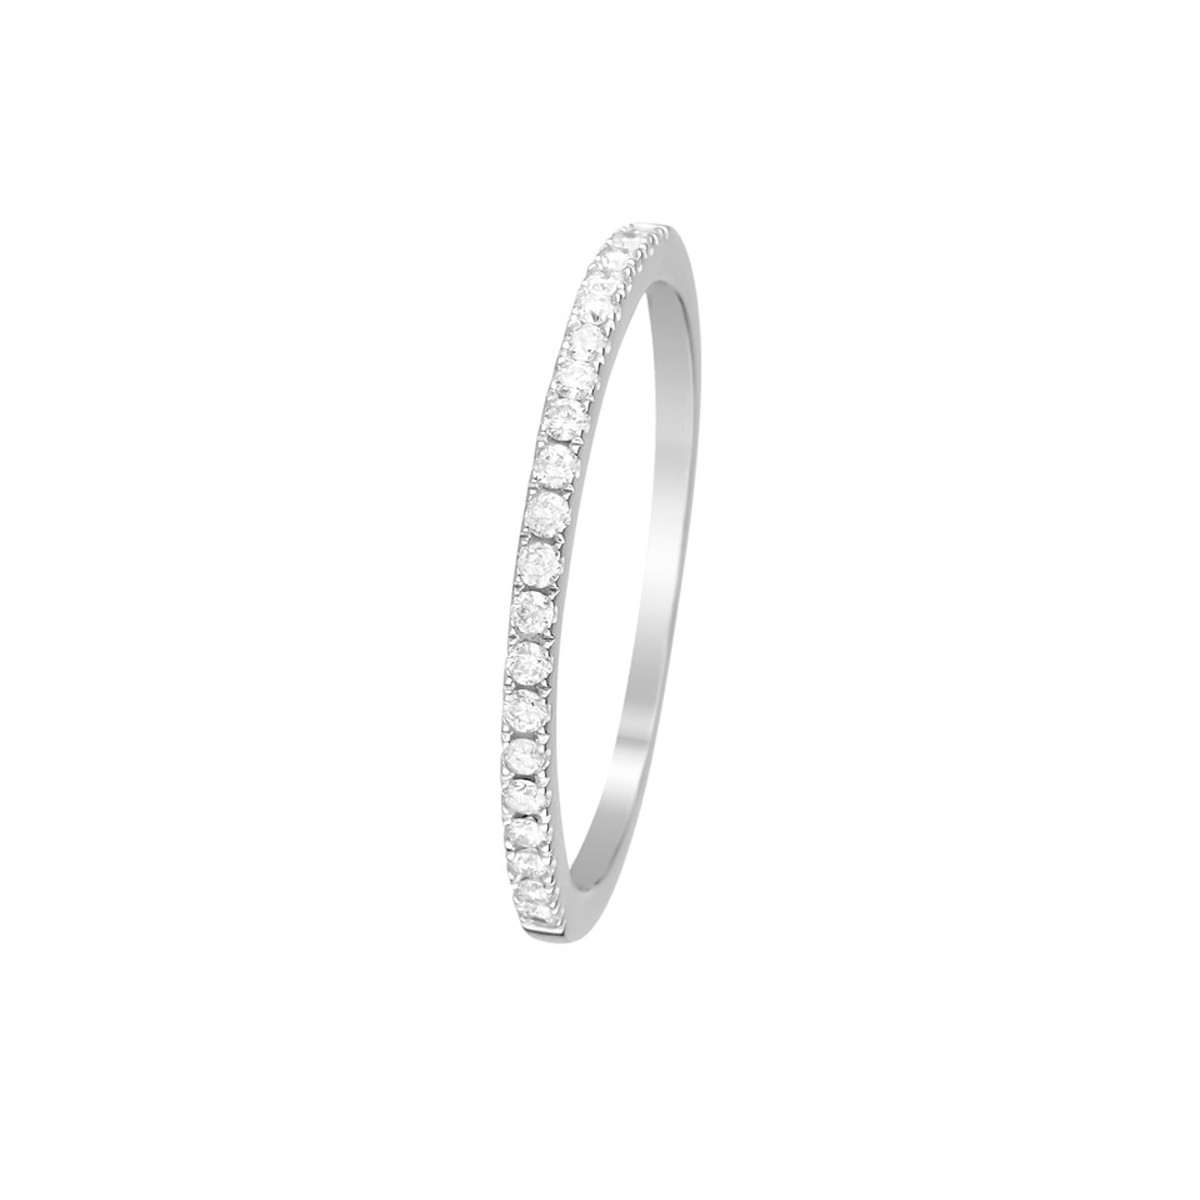 Bague Or Blanc Diamants 0 16 Carats Alliance Delice Mes Bijoux Fr